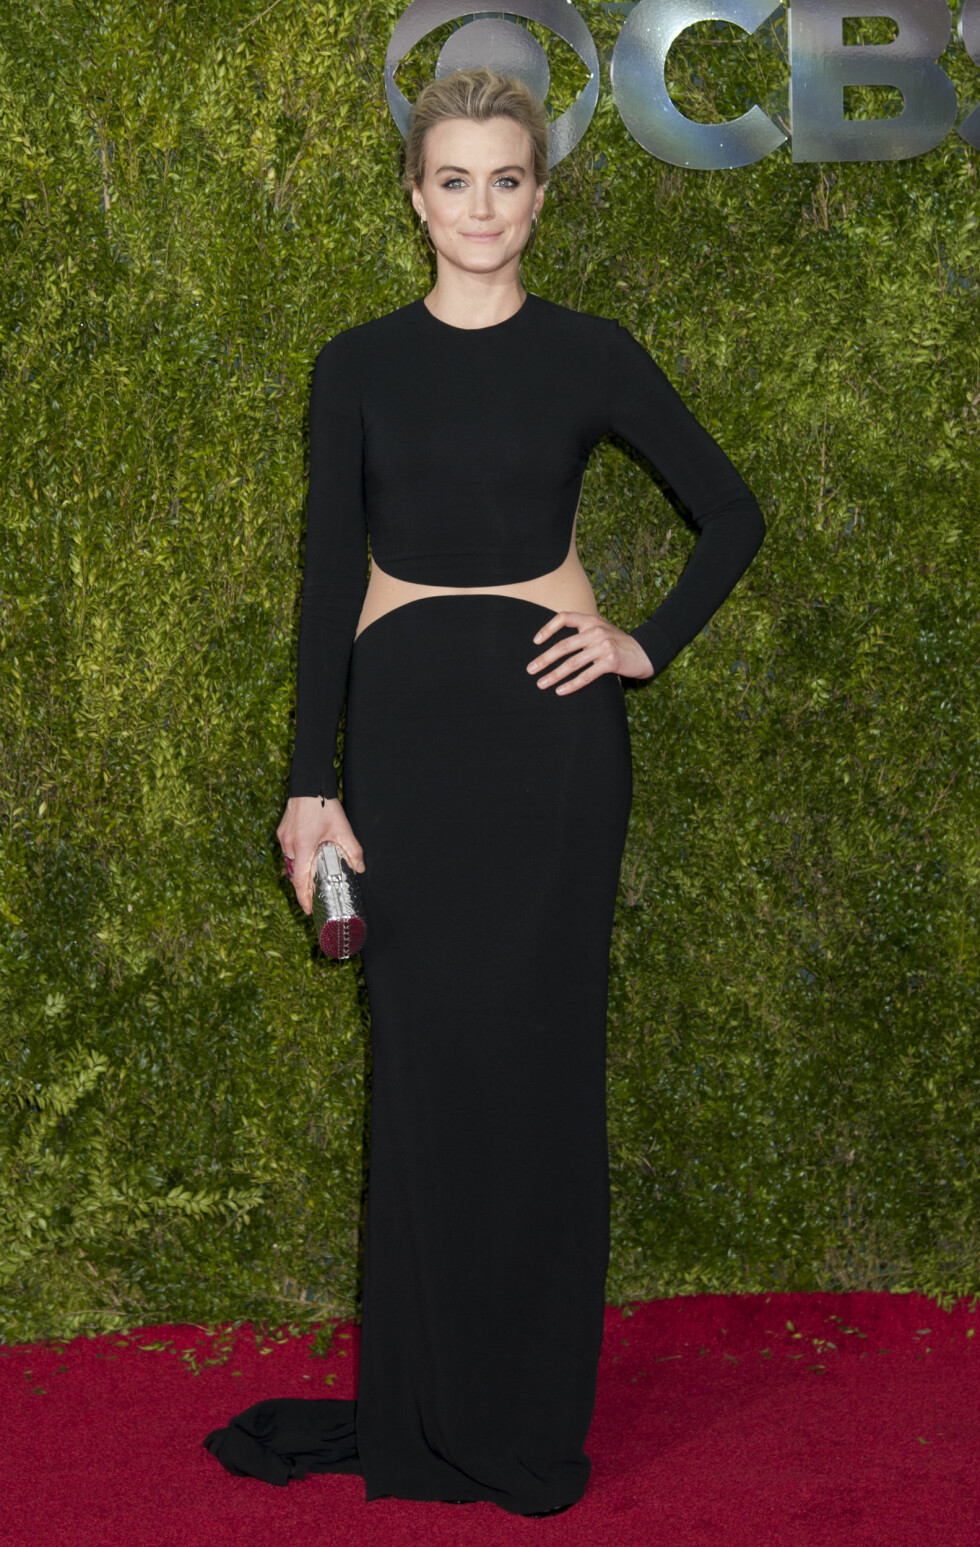 IKKE I ORANSJE: «Orange is the New Black»-stjernen Taylor Schilling gikk for en sort Michael Kors-kjole på årets Tony Awards.  Foto: wenn.com